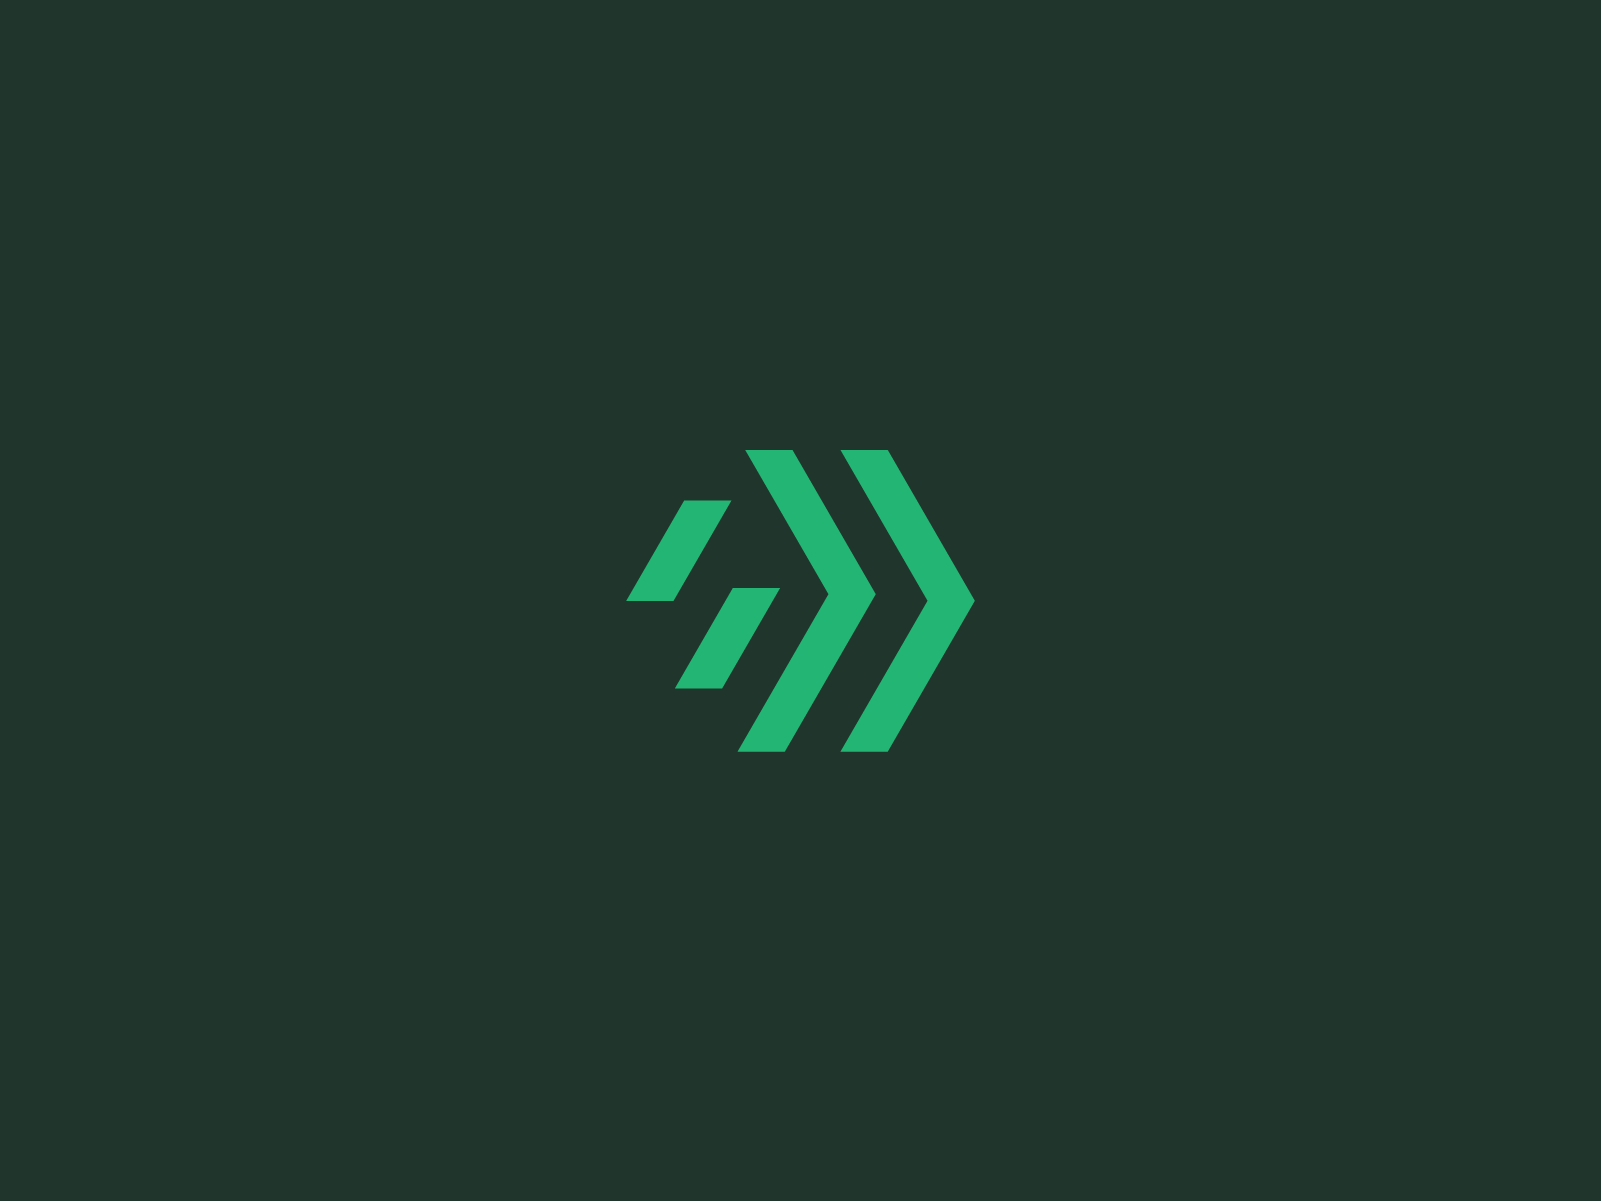 Eh dribbble